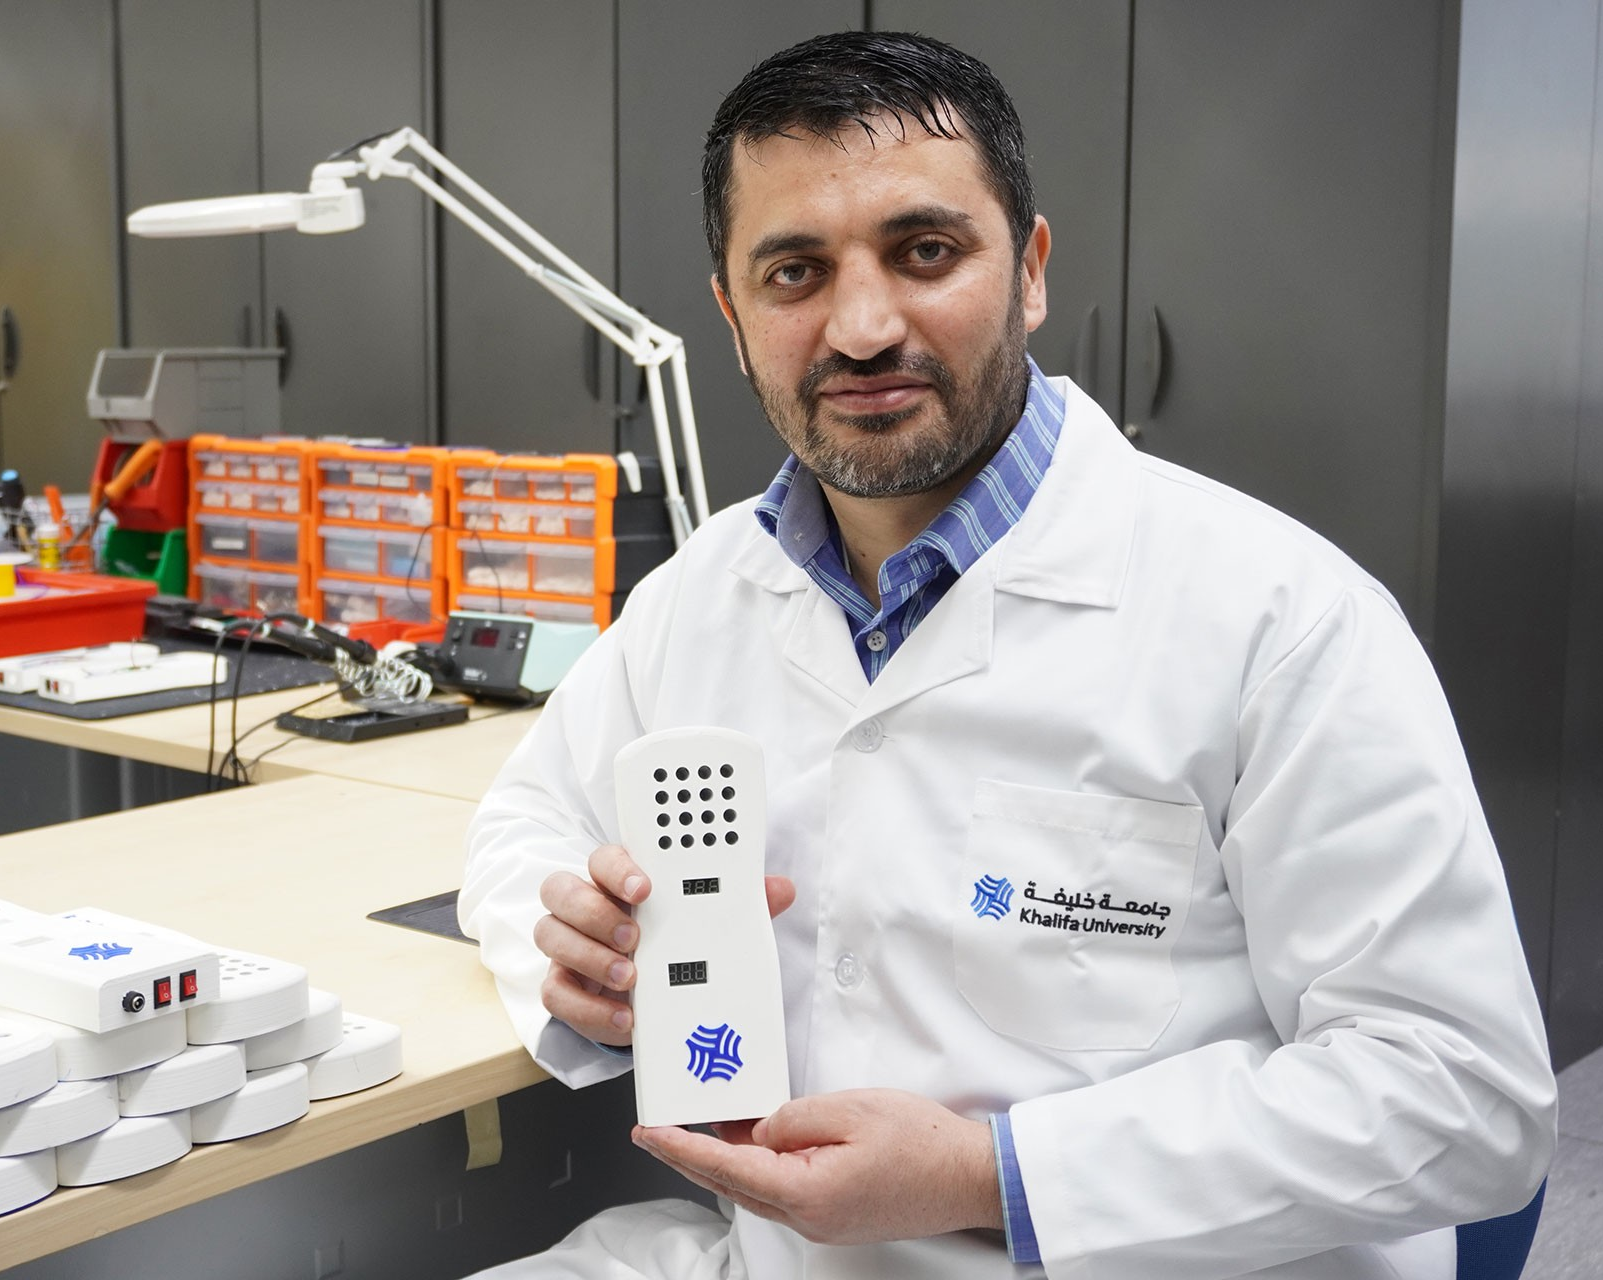 Handheld device takes aim at detecting COVID-19